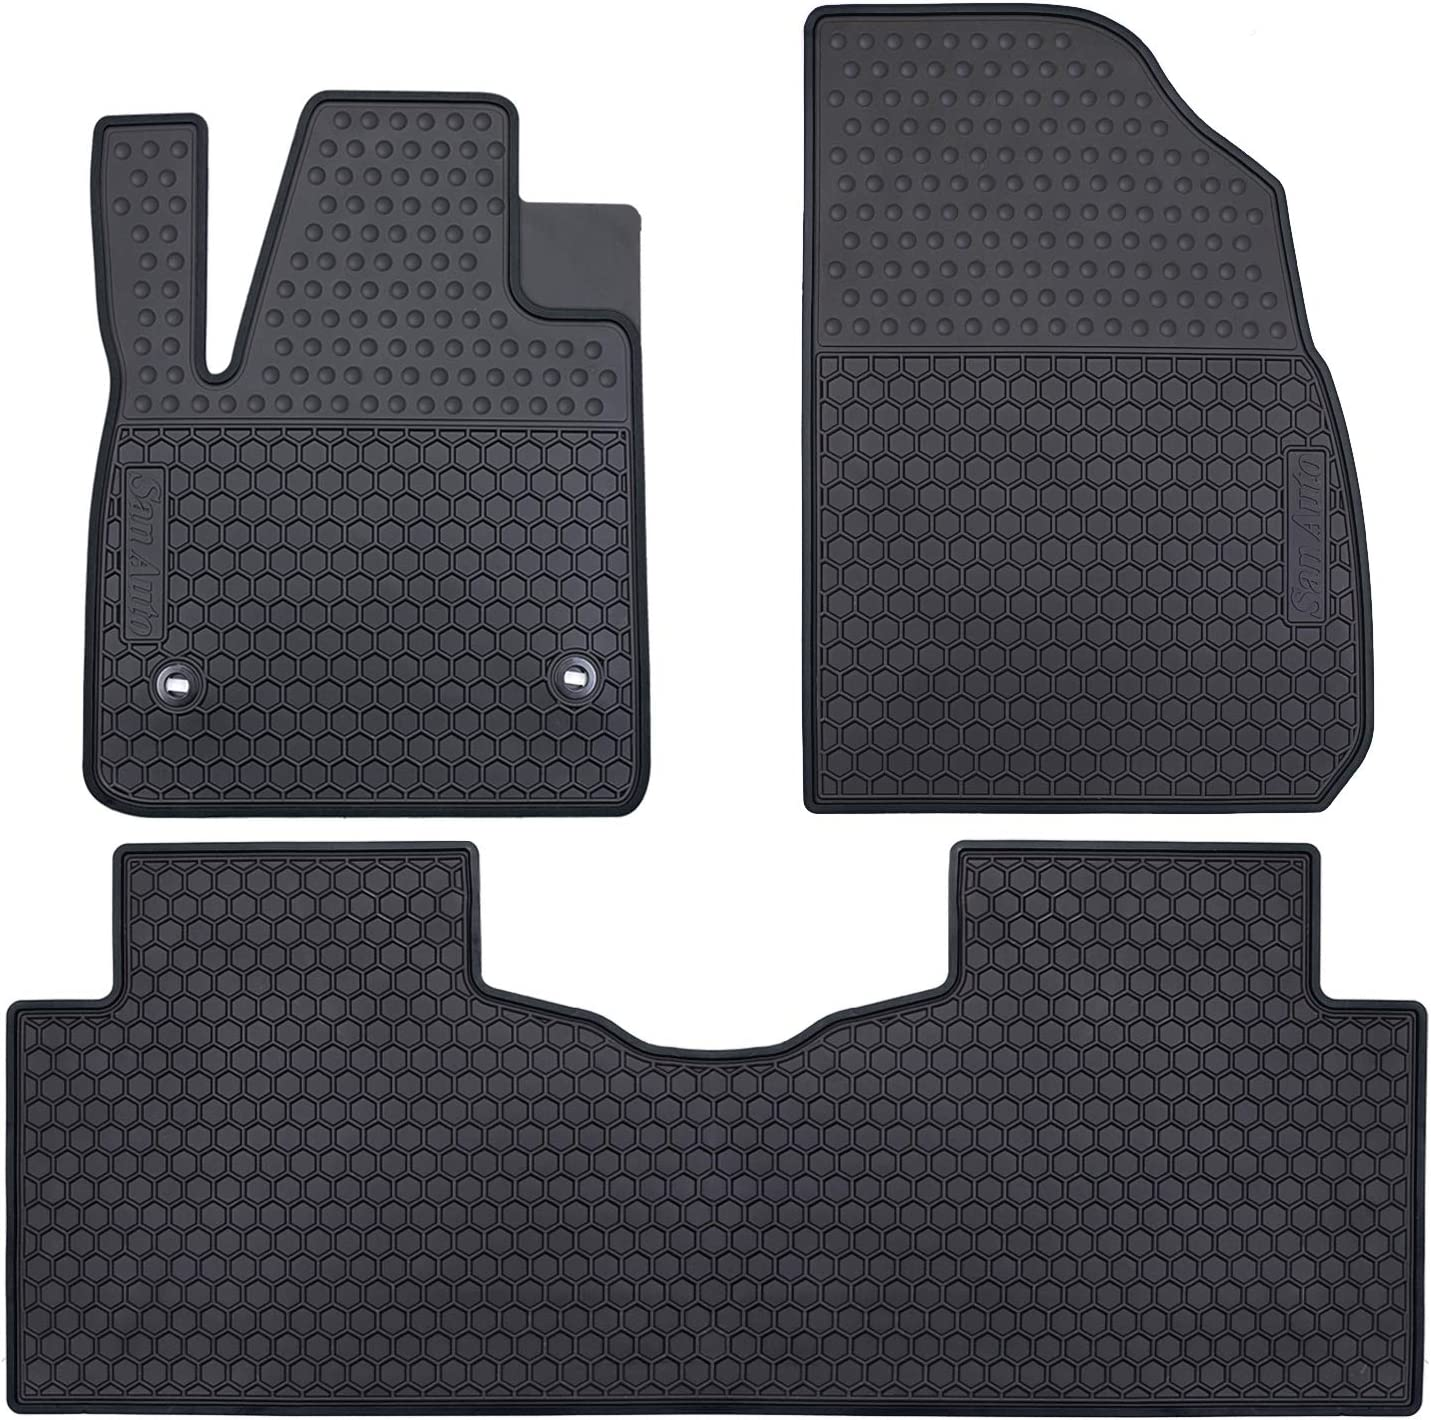 San Auto Car Floor Mats Fit for 2017-2021 Cadillac XT5, 2017-2020 GMC Acadia, 2019-2021 Chevrolet Blazer Front & 2nd Seat Floor Liners Rubber Full Black All Weather Heavy Duty Odorless